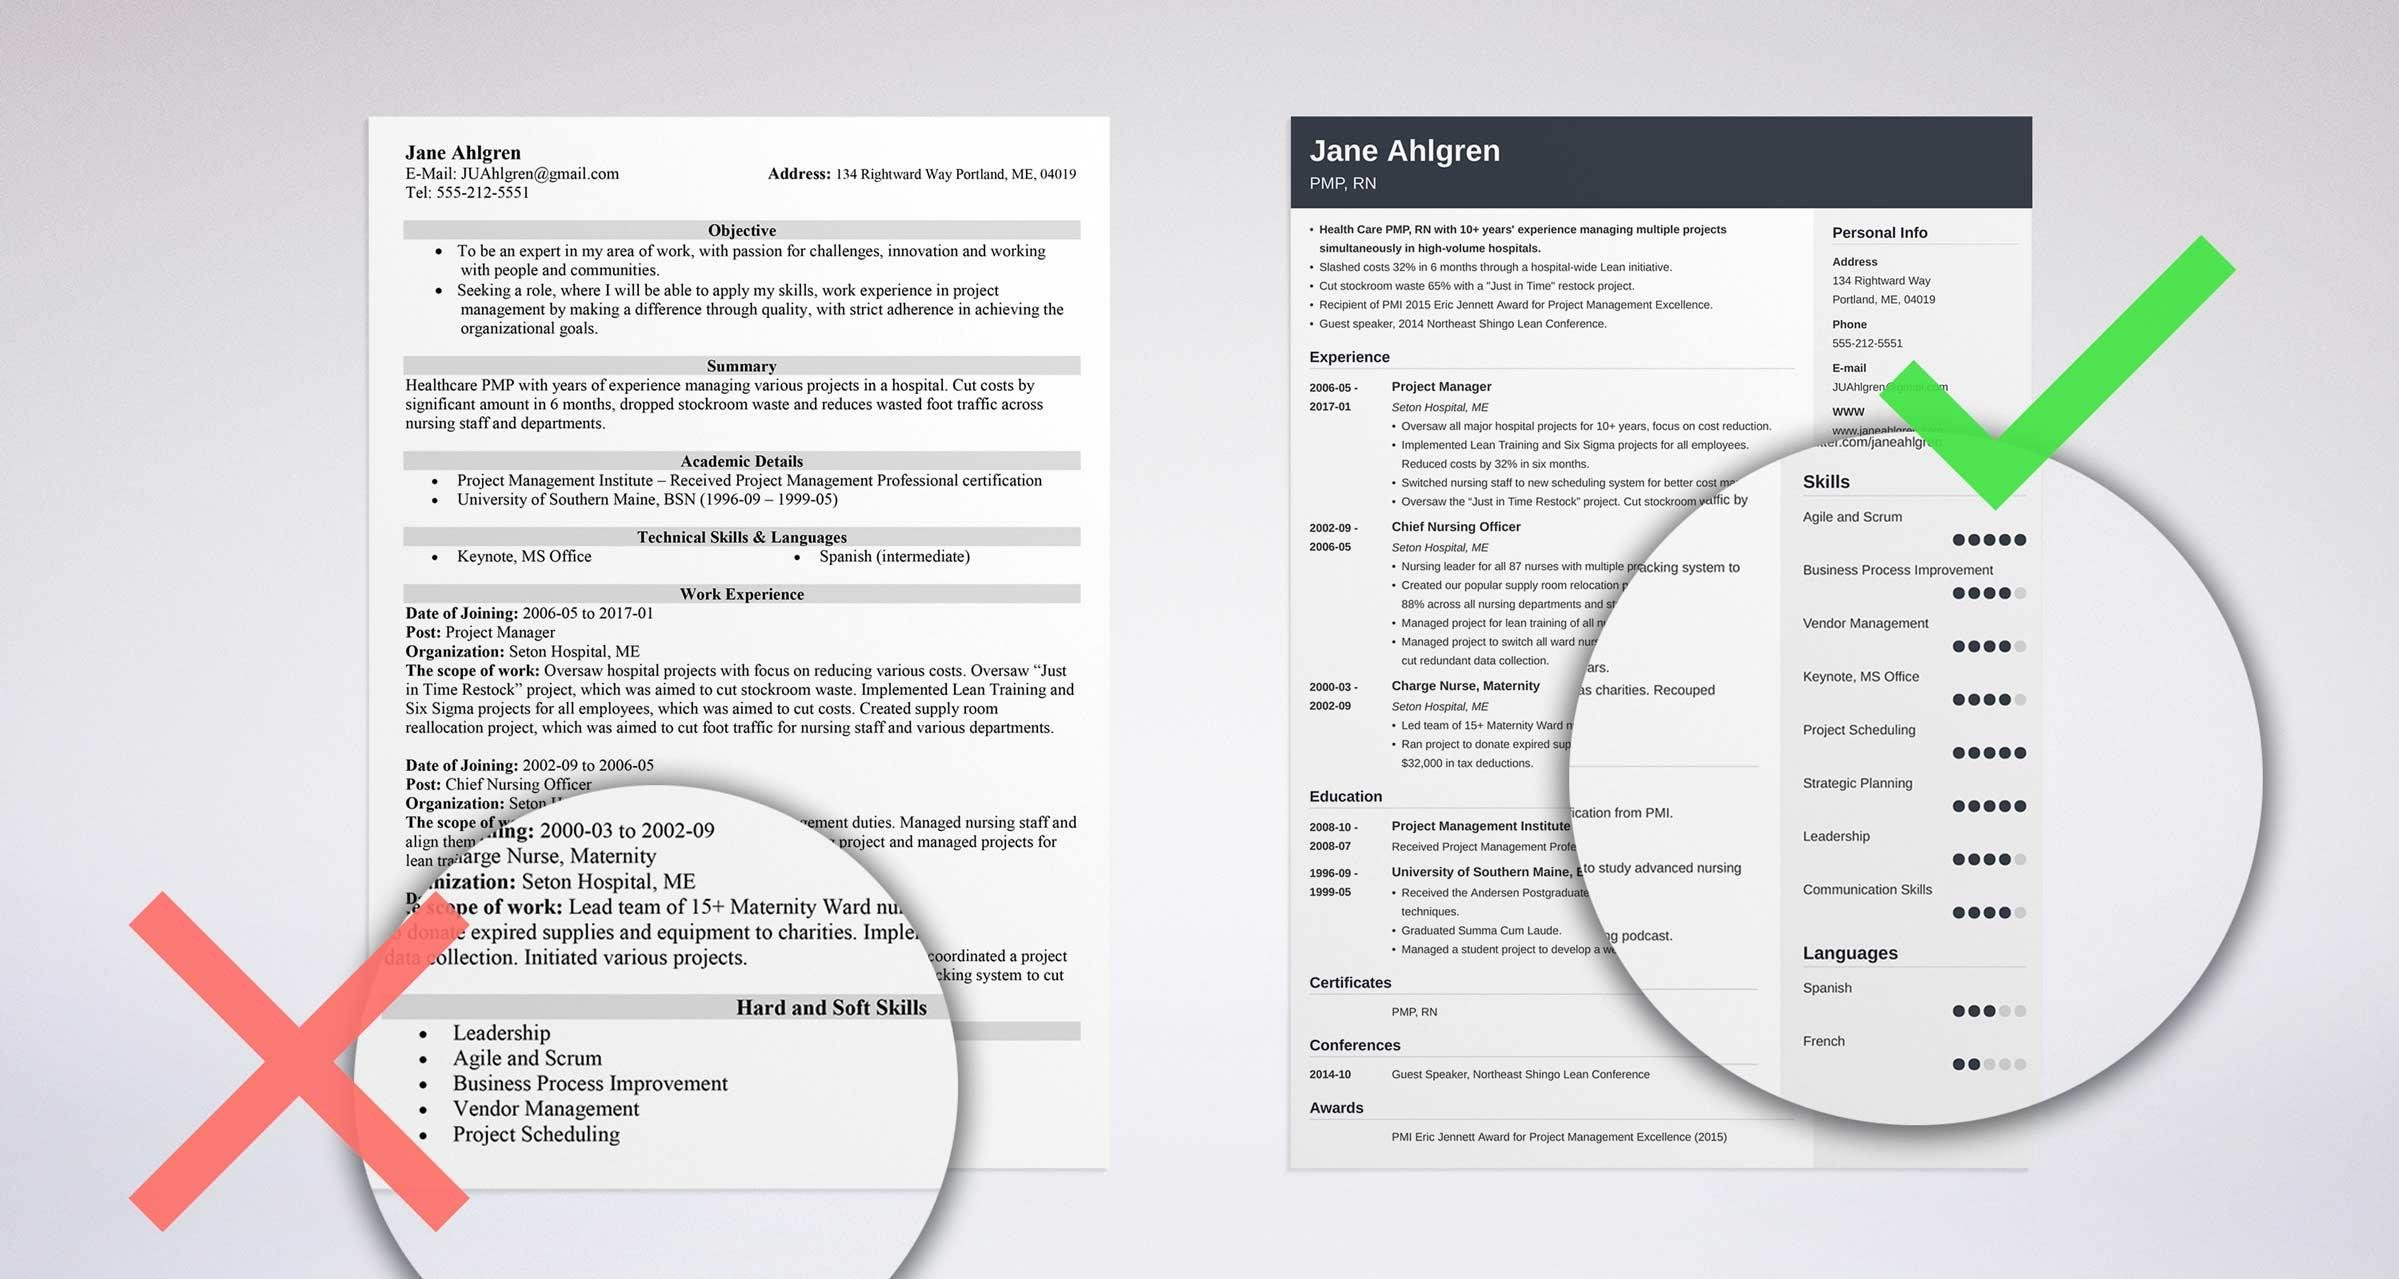 transferable skills definition examples for resume checklist of on resume1 one writing Resume Resume Checklist Of Transferable Skills